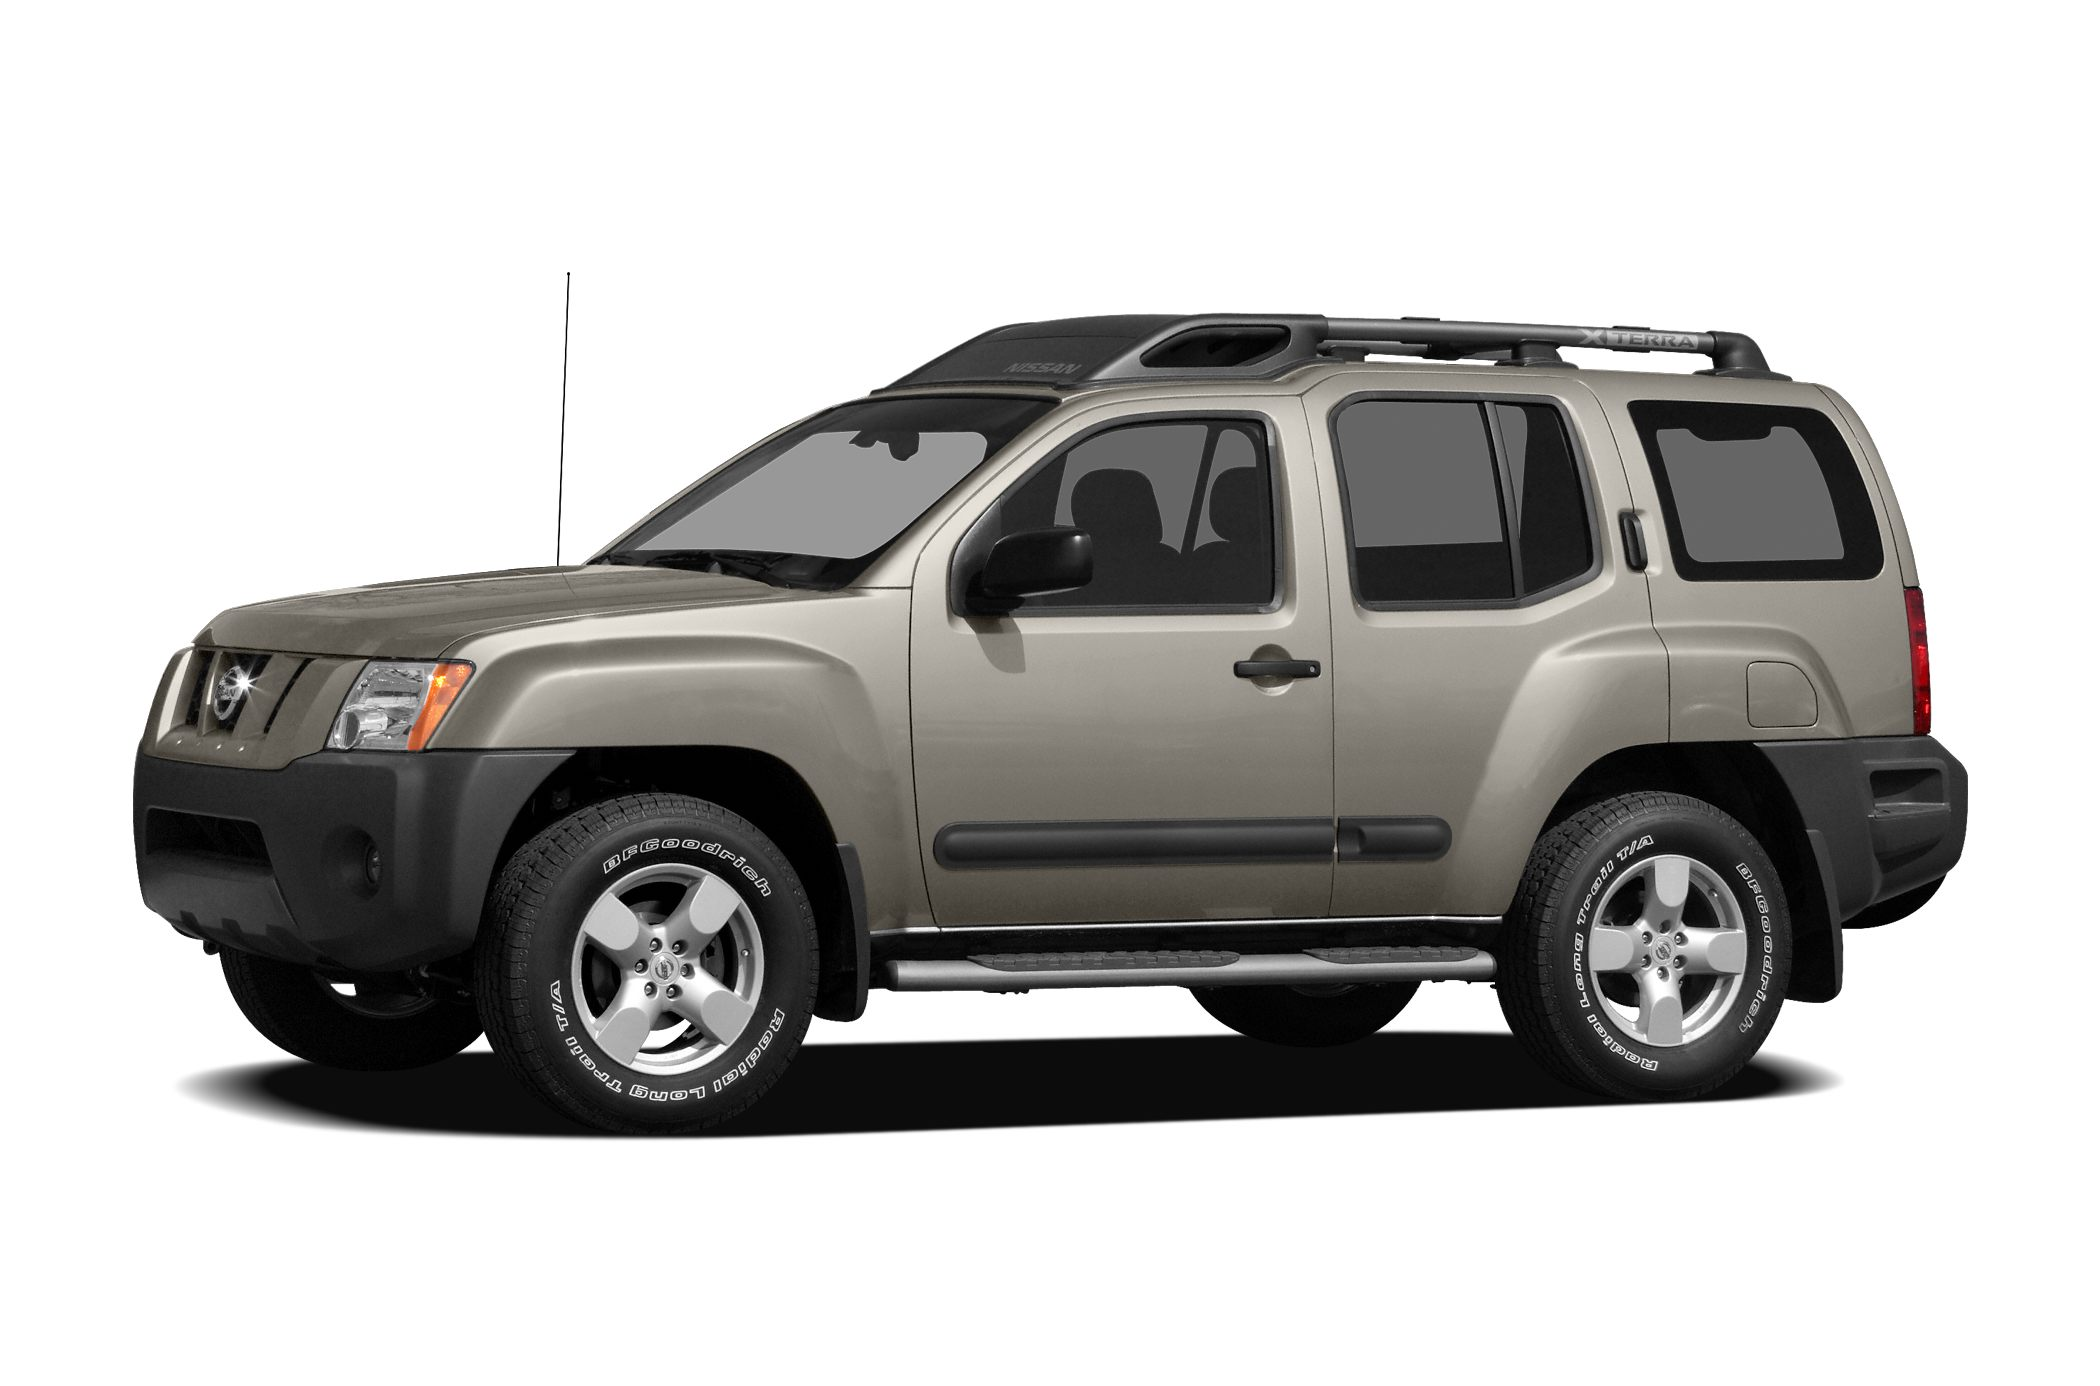 2007 Nissan Xterra S SUV for sale in Falls Church for $8,995 with 120,971 miles.